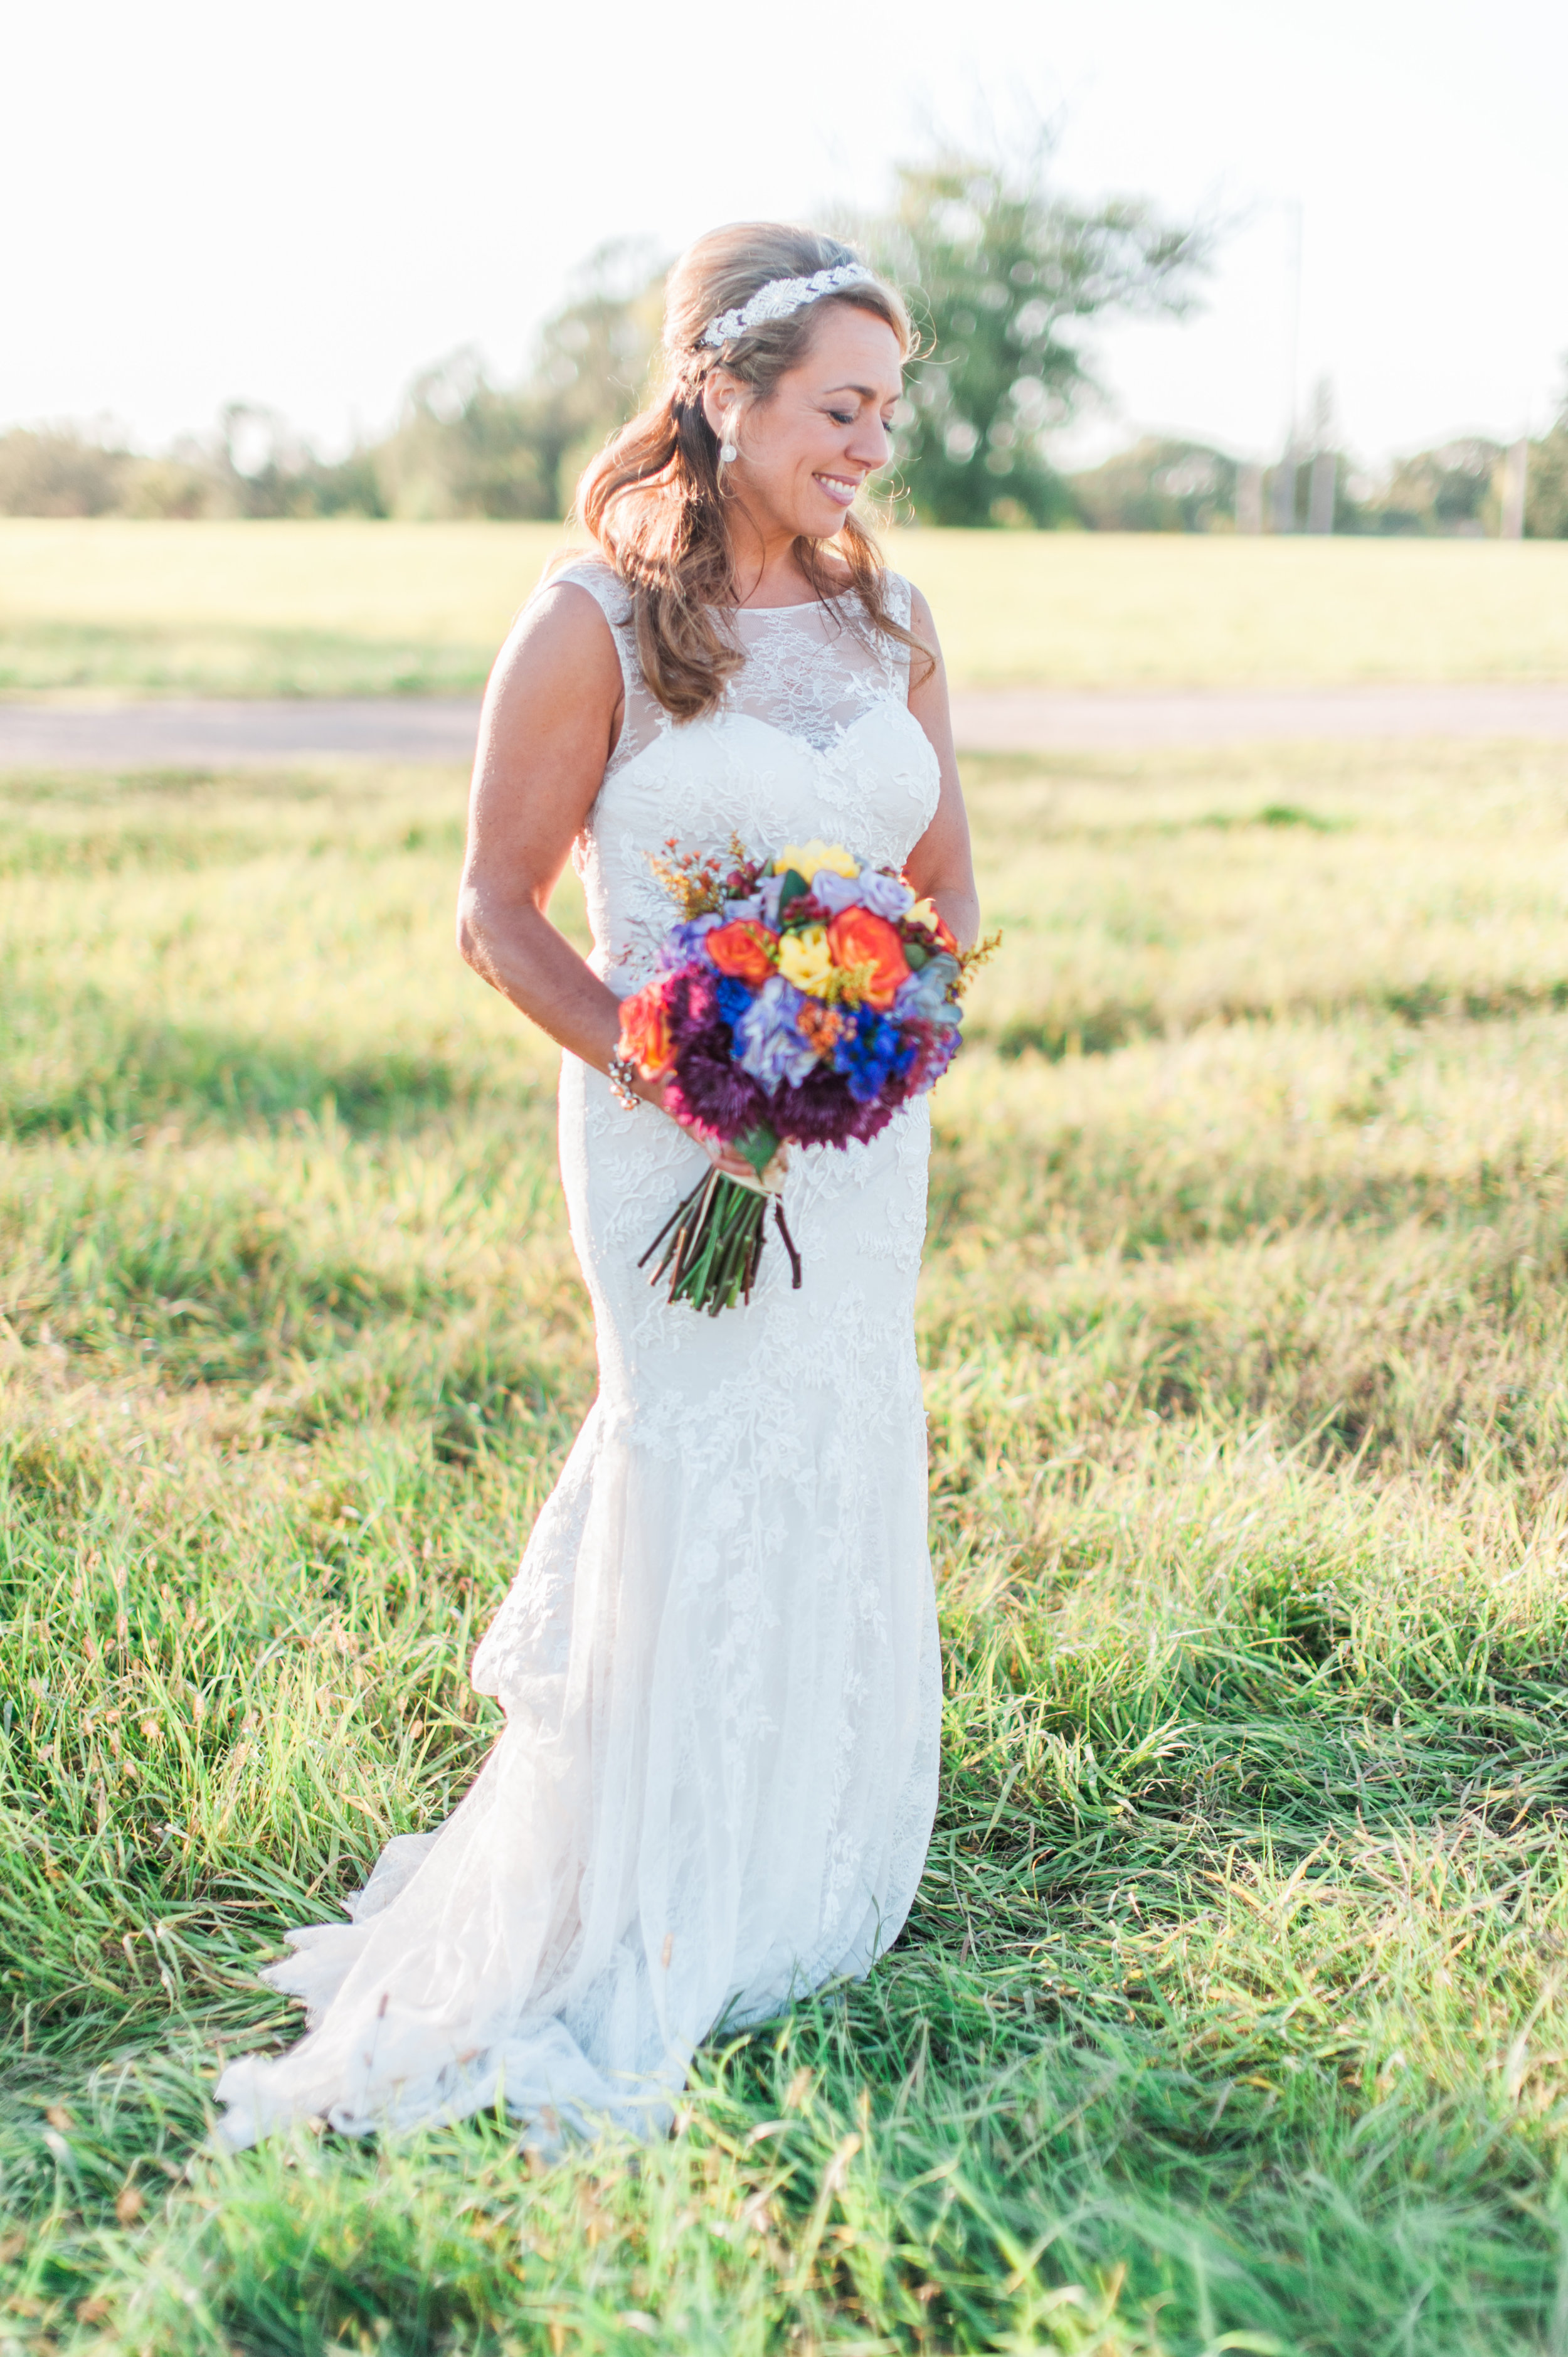 A photograph by Samantha Weddings of a bride in a field near Omaha, Nebraska. Just outside of her outdoor wedding venue in Omaha.